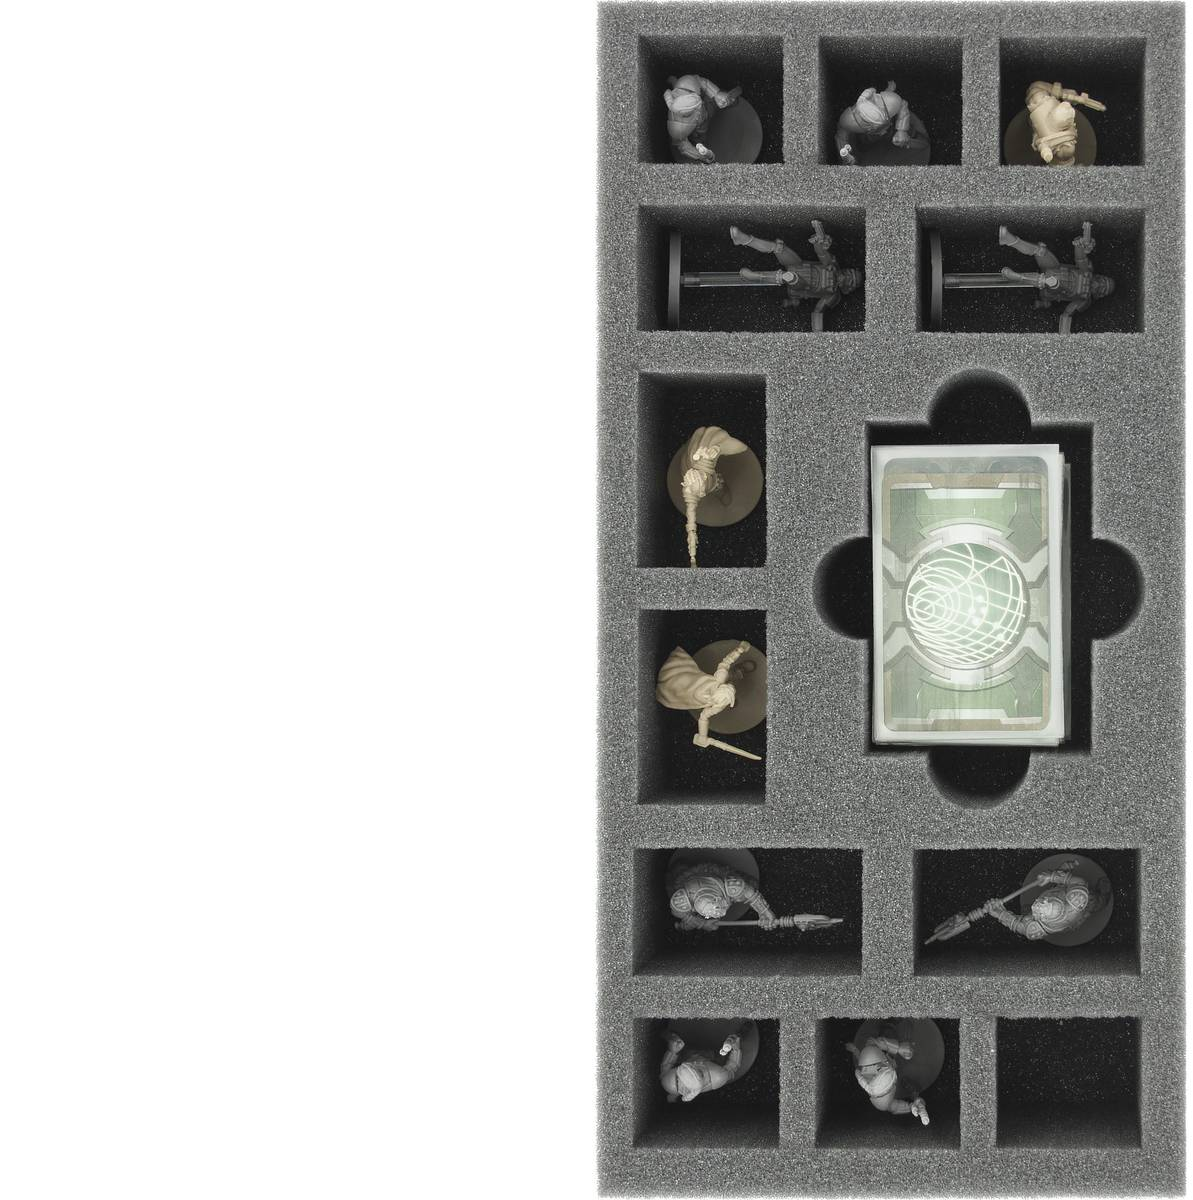 BEJH055BO 285 mm x 142,5 mm x 55 mm foam tray for Imperial Assault: Jabba's Realm